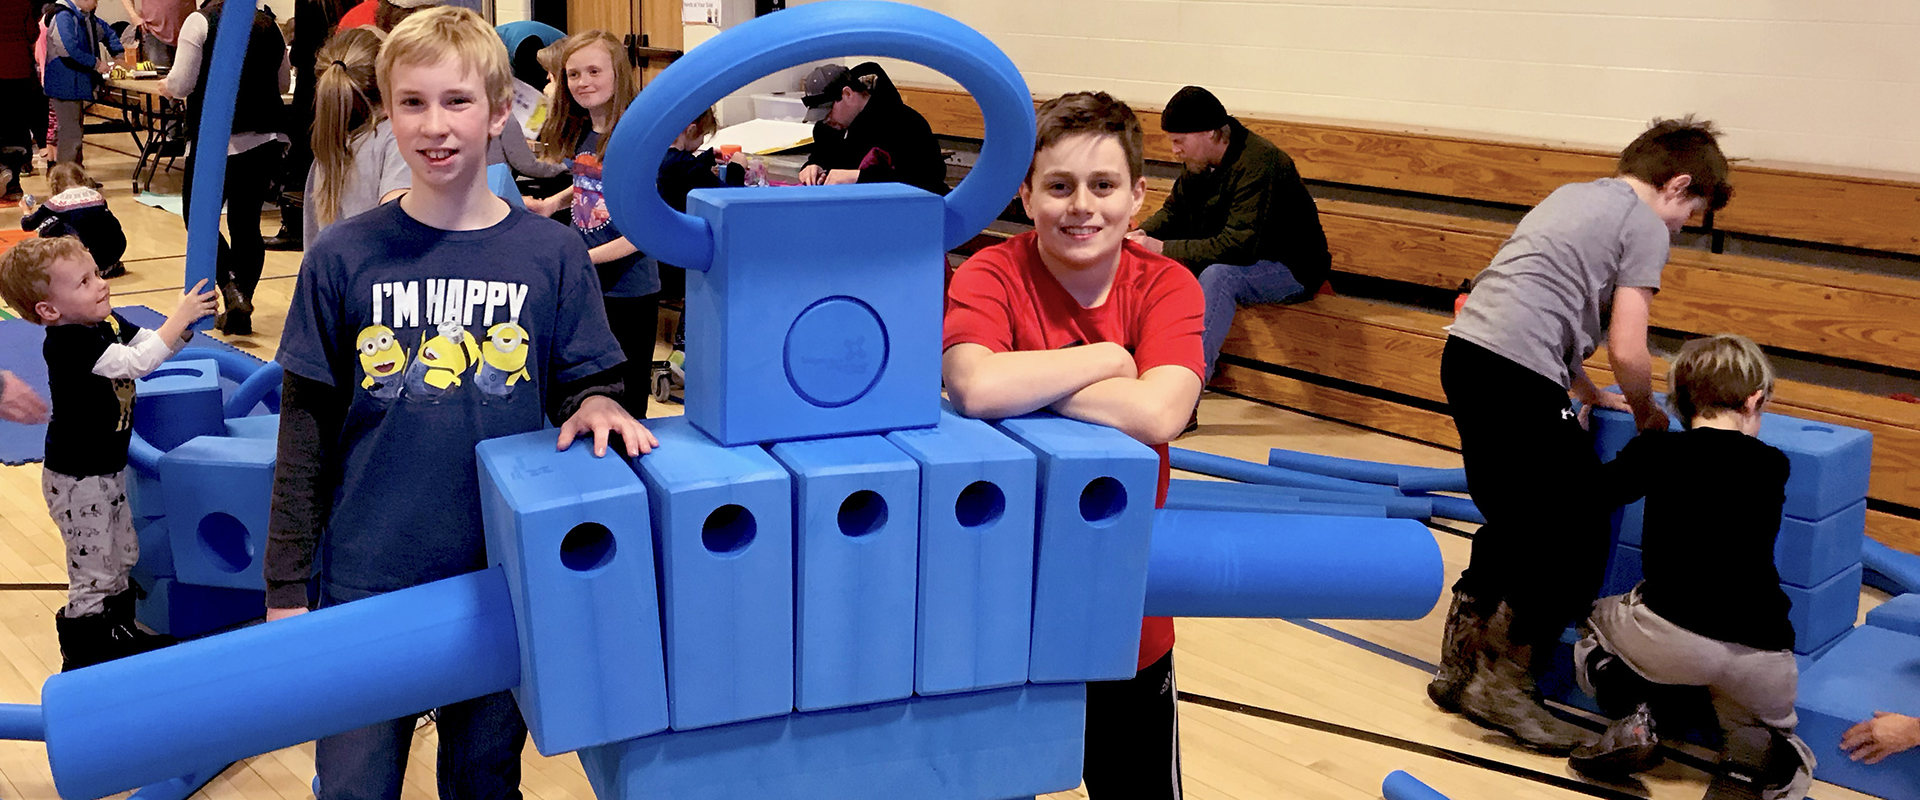 Kids at school building an oversized blue robot with blue blocks